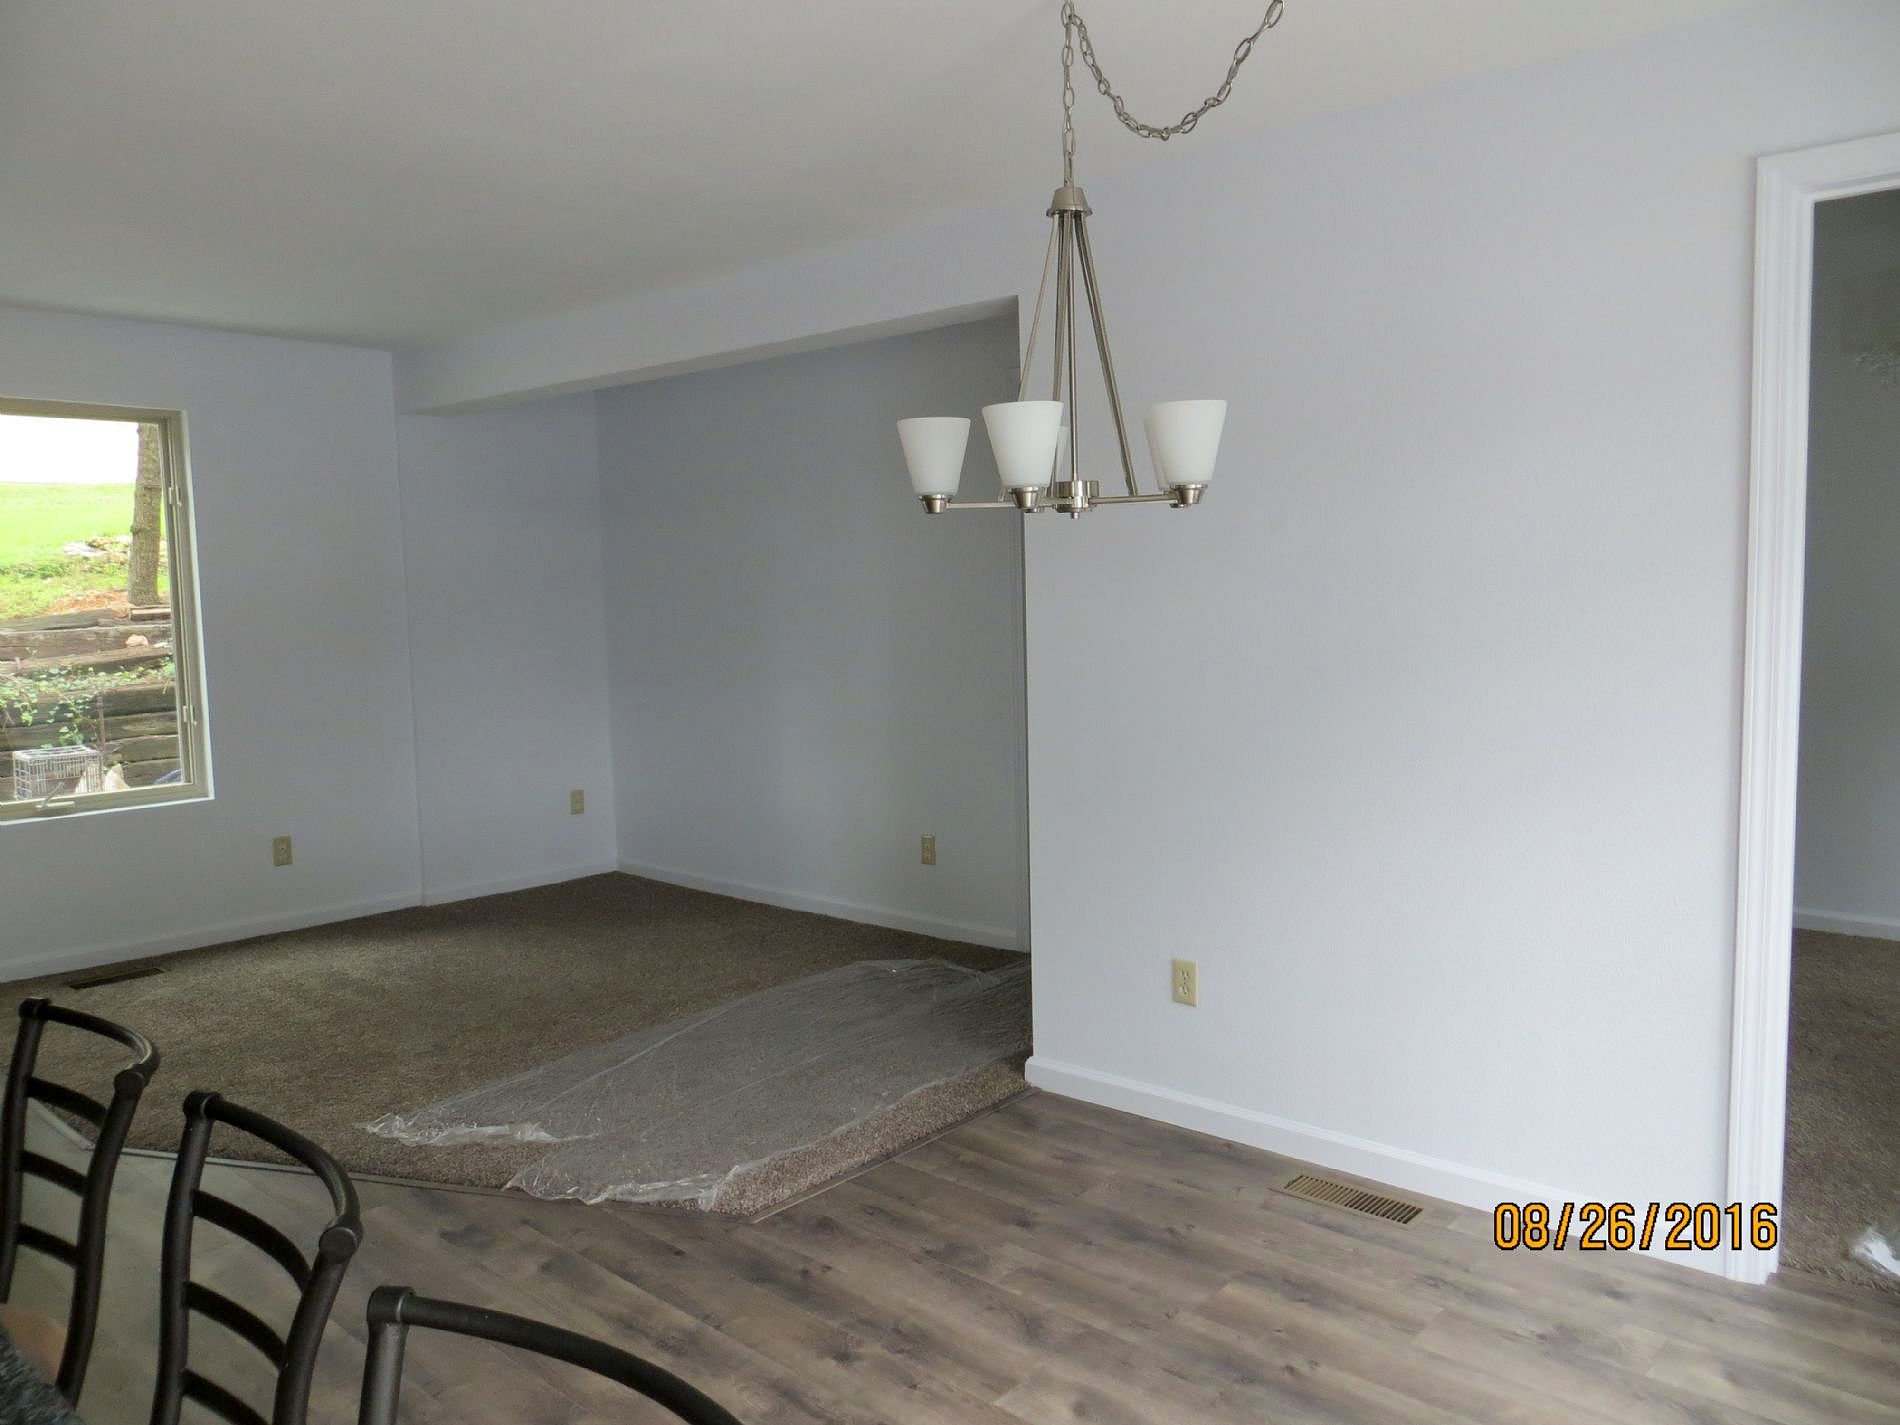 2 Bedrooms / 2 Bathrooms - Est. $1,301.00 / Month* for rent in Gravois Mills, MO